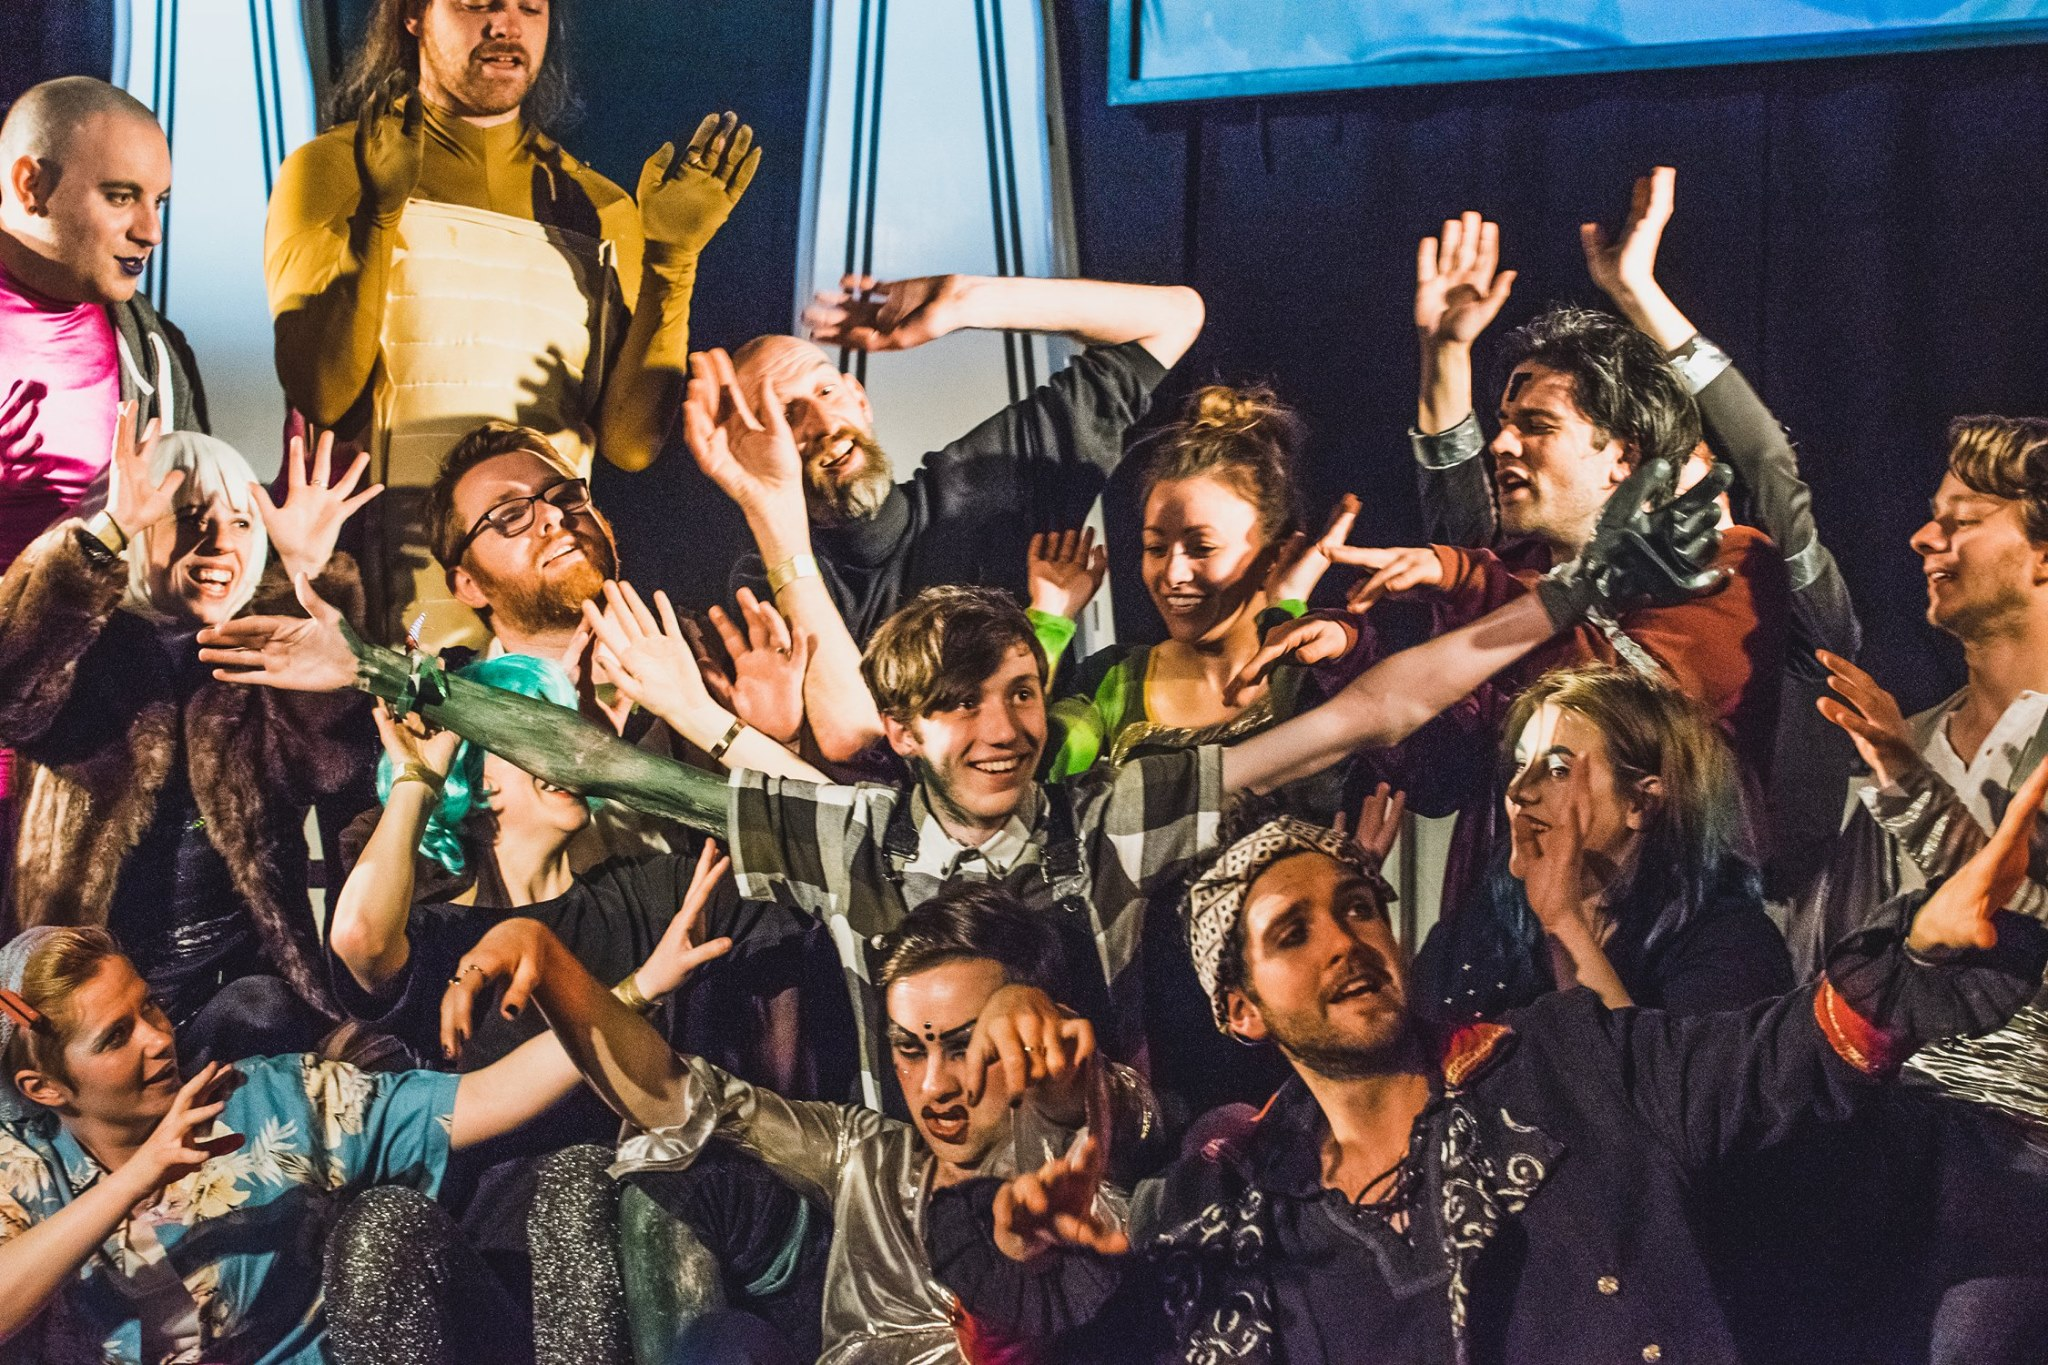 Tmesis Theatre: Physical Fest Workshops: Improvisation for Performers